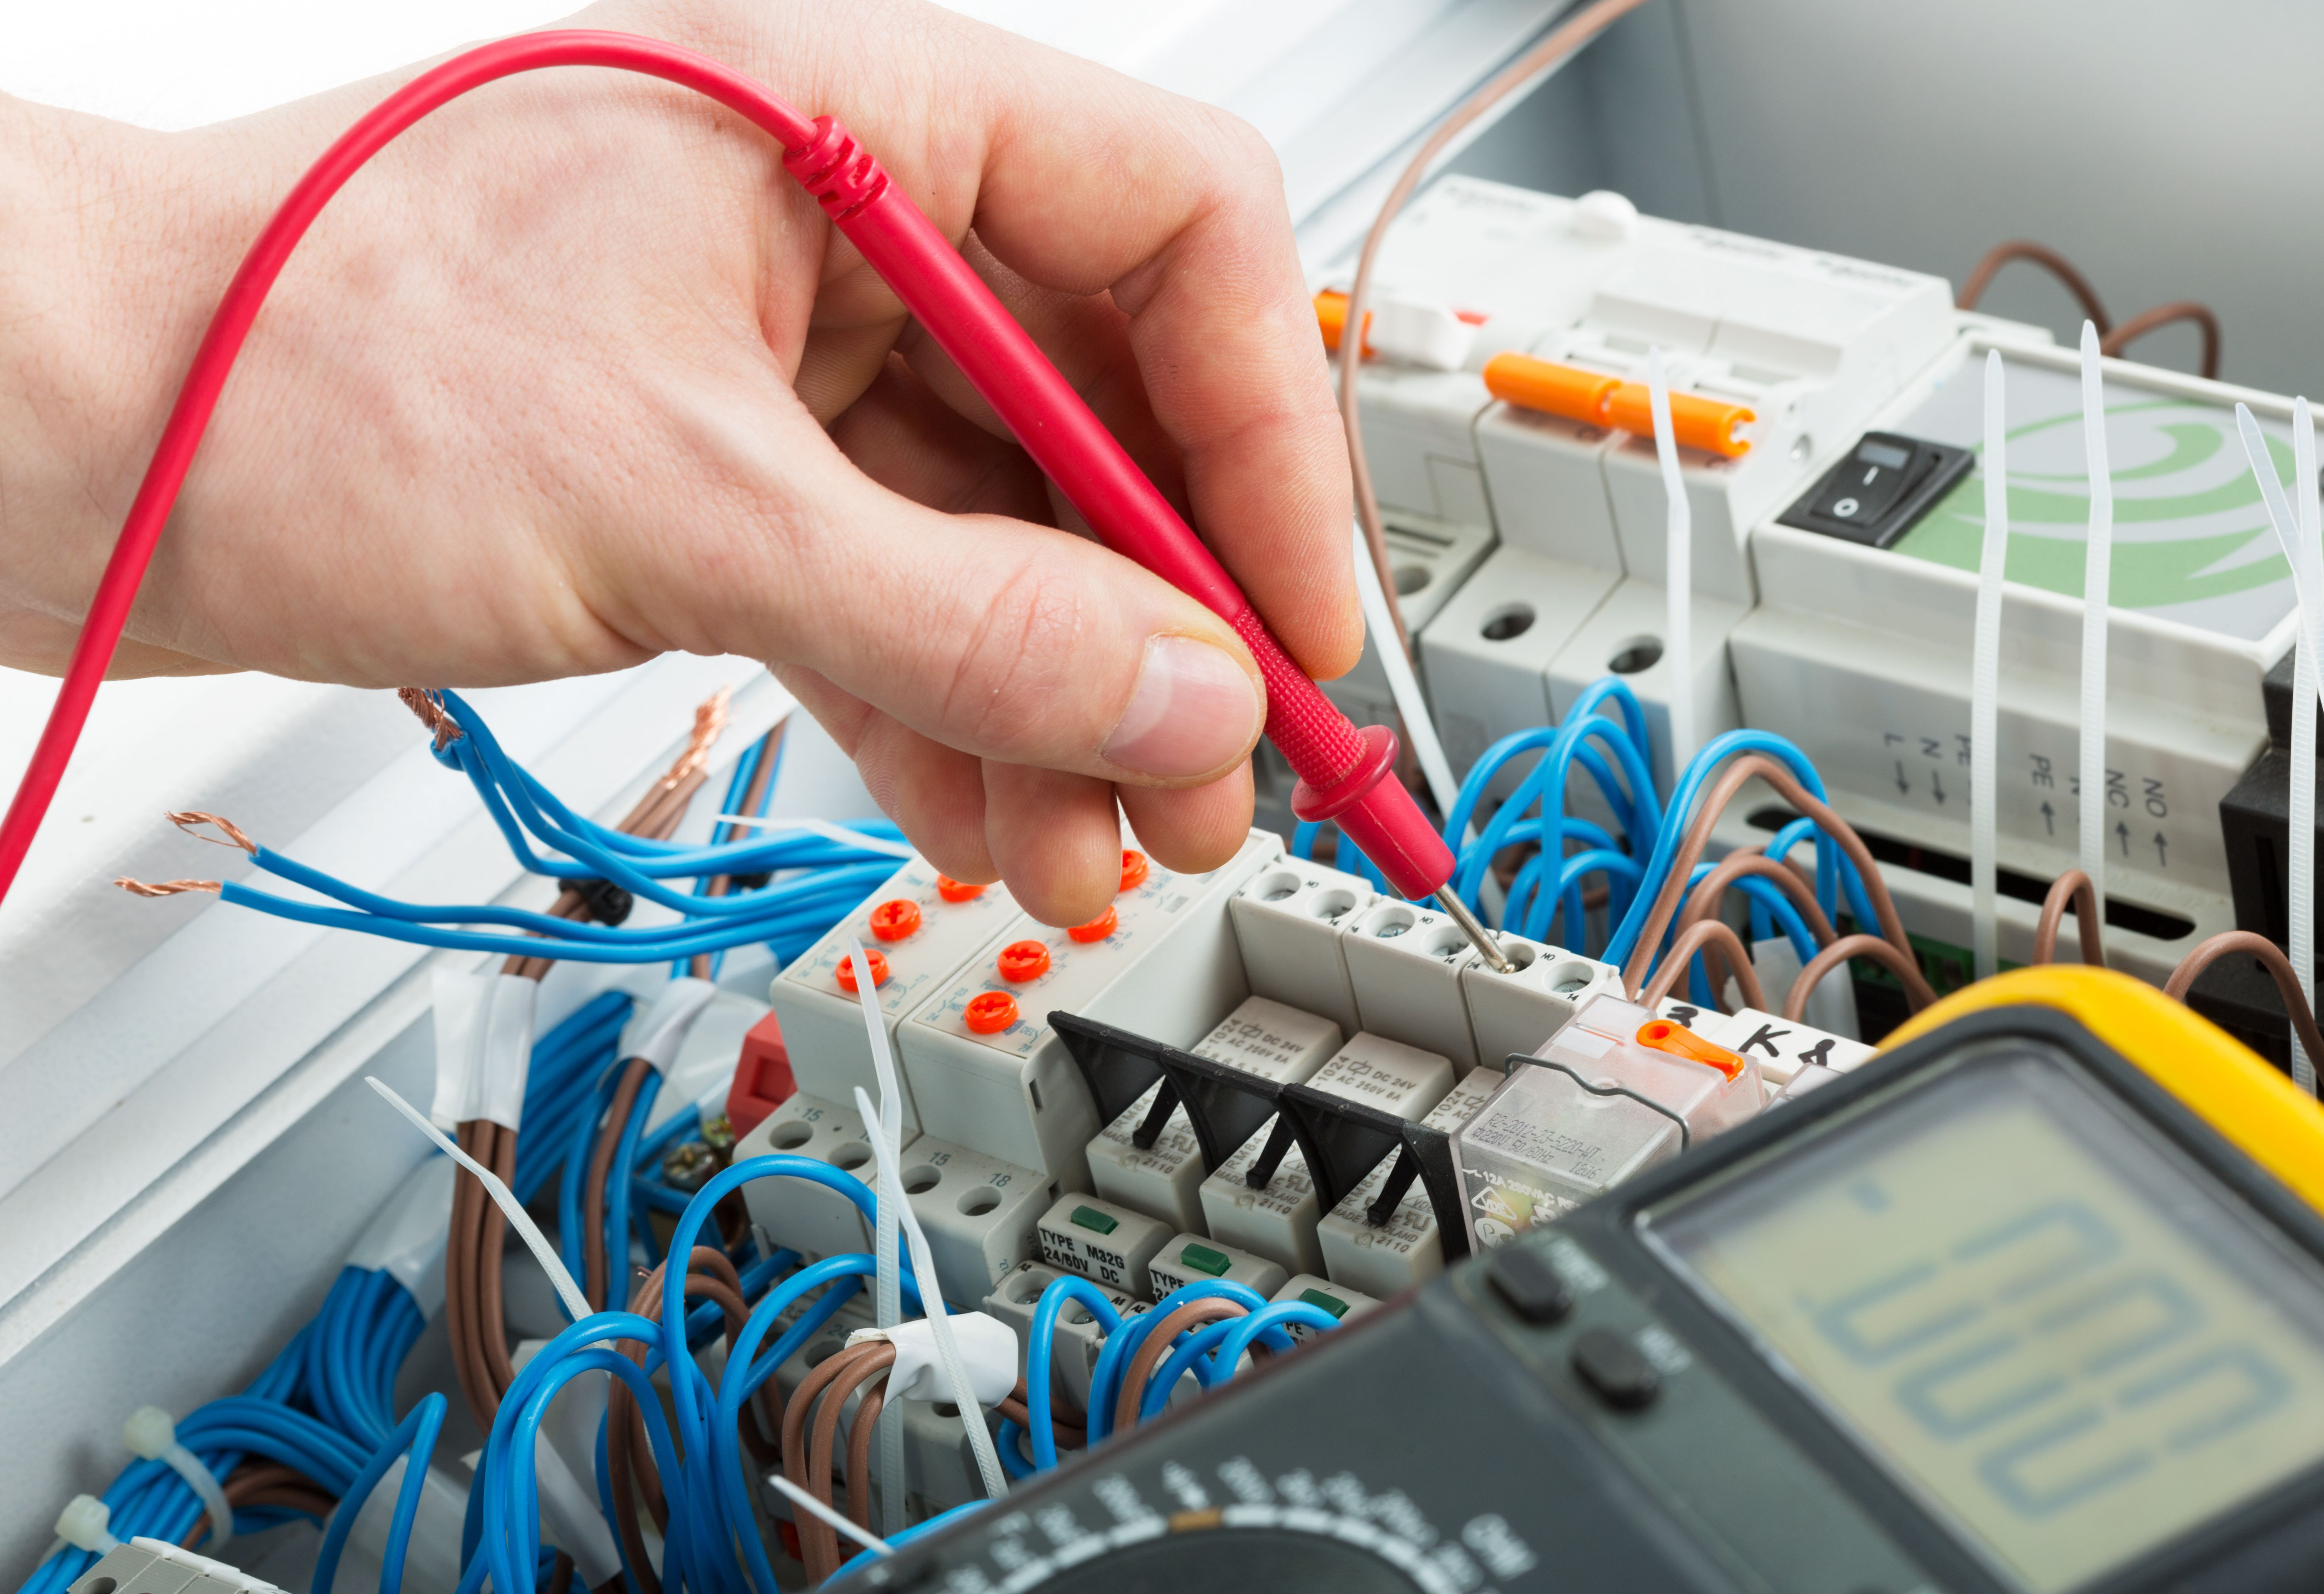 Pin On Commercial Electrician